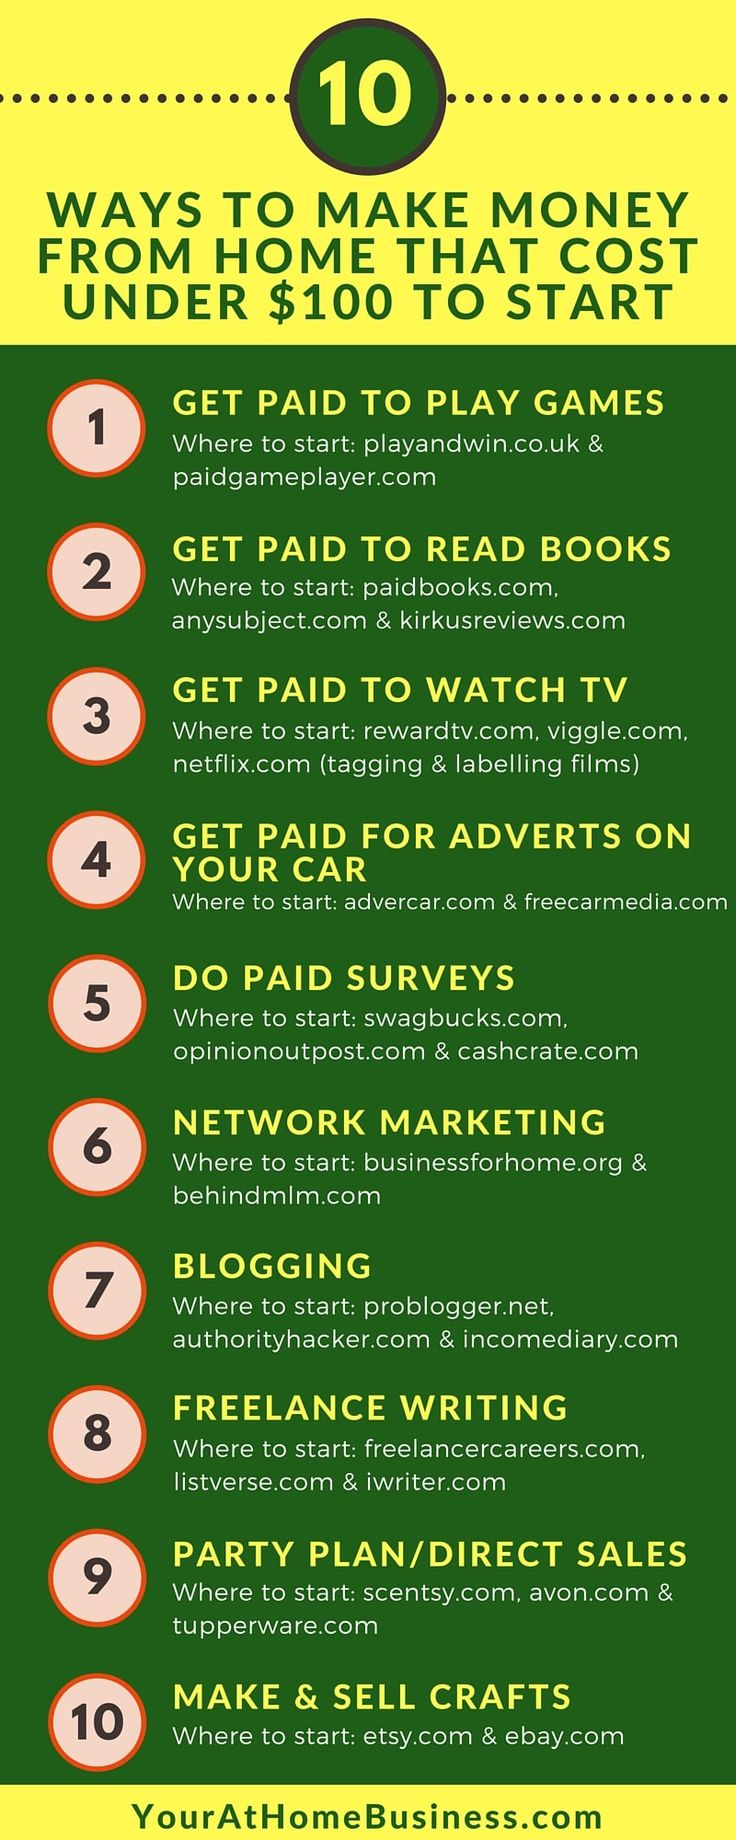 How to Start a Home Business on a Budget [INFOGRAPHIC] #Infographics